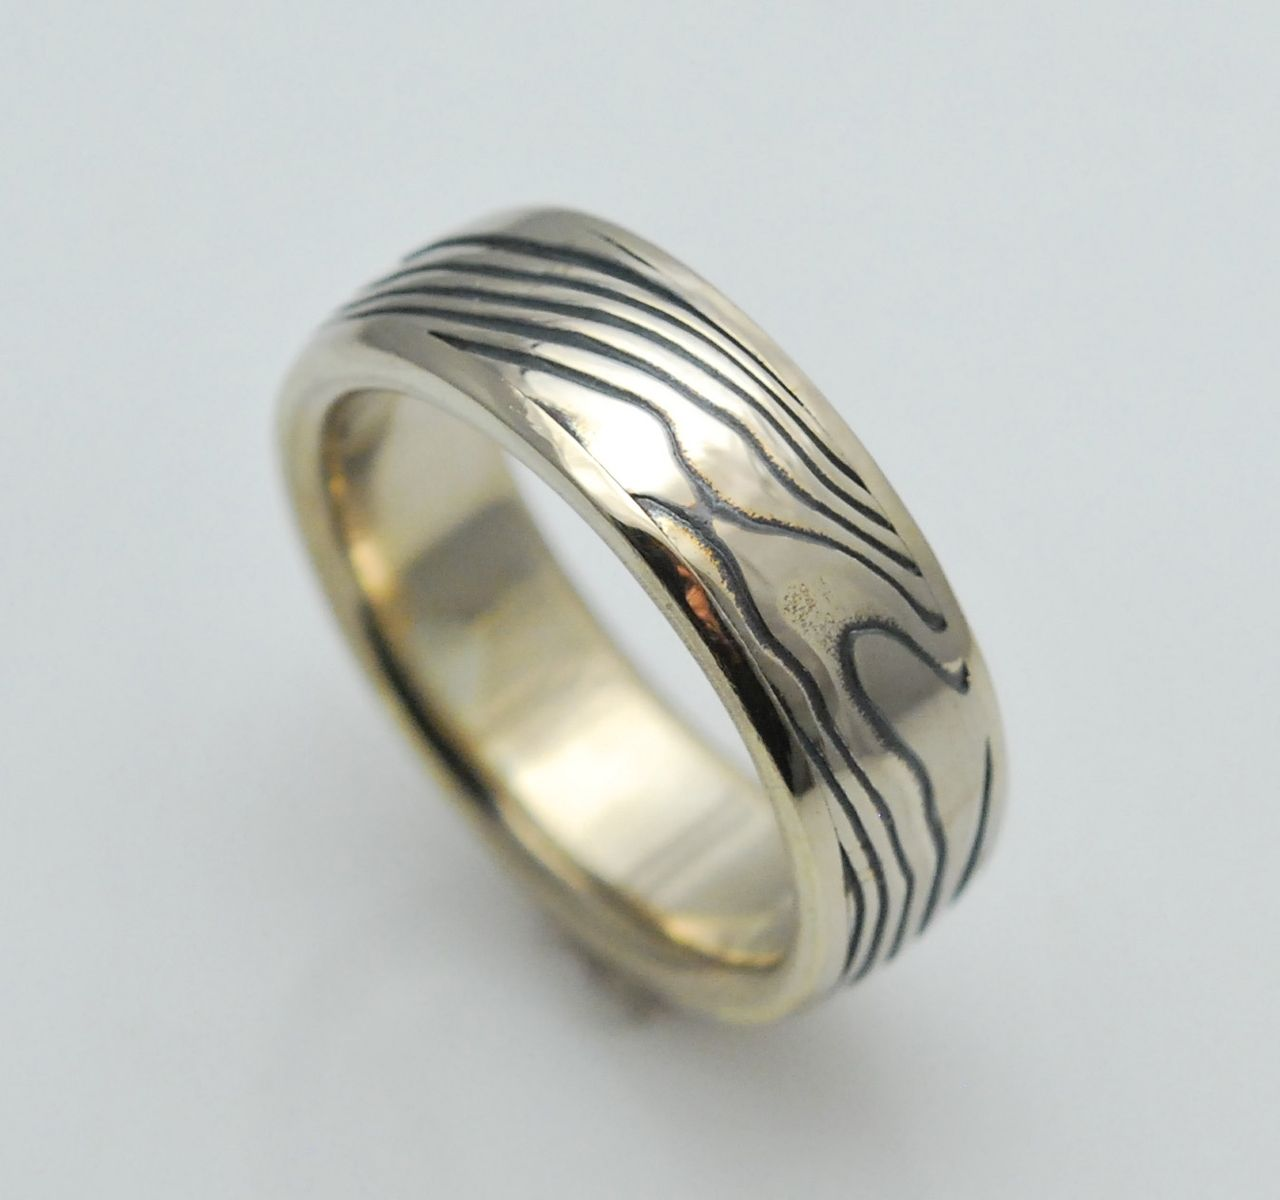 mokume ring patrick finished rings customized designs products adair gane